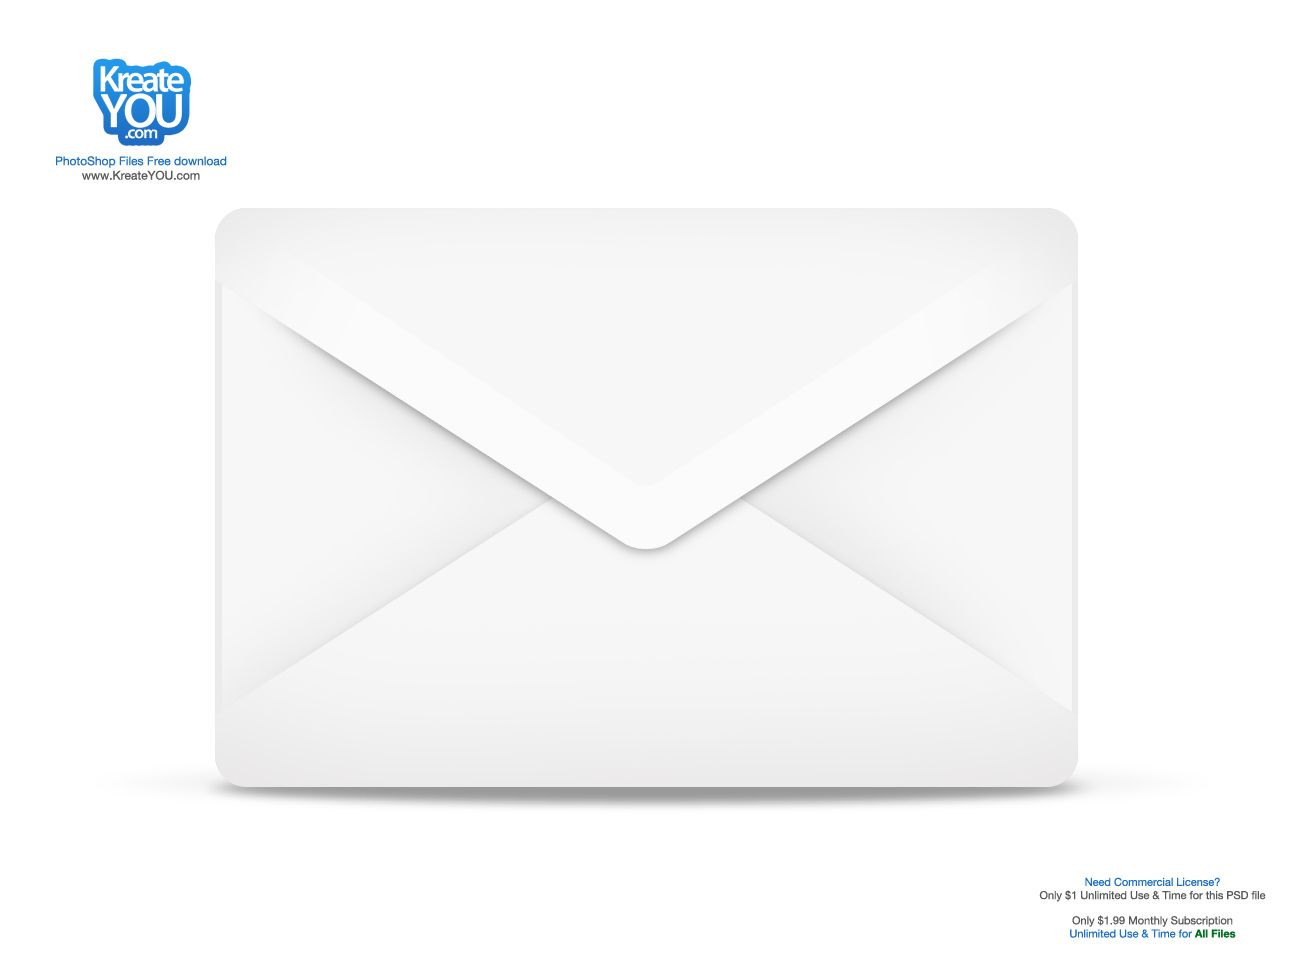 Email icon (PSD)! Free PSD download for personal use. For ...